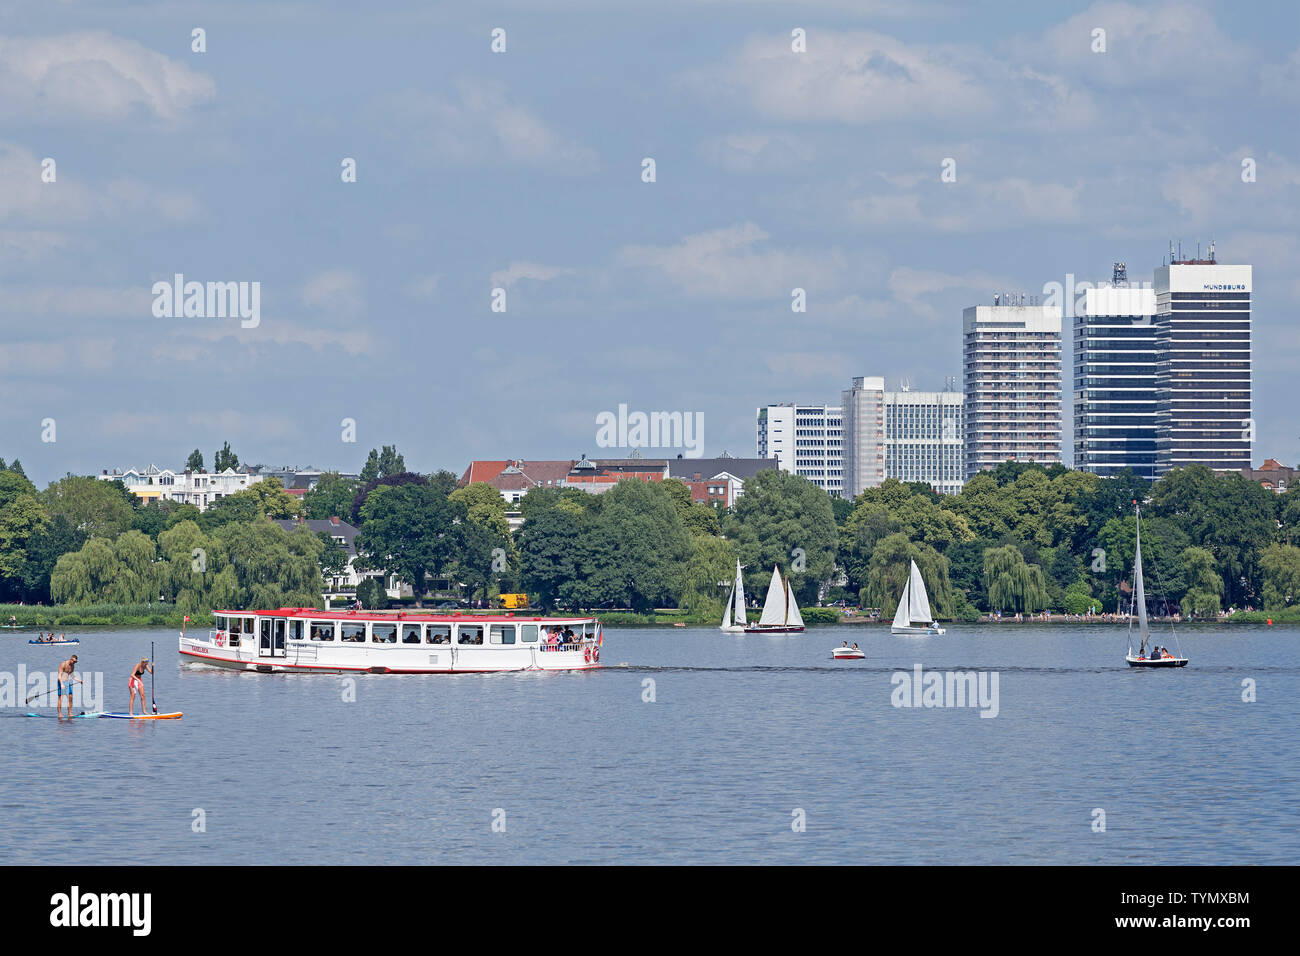 shipping traffic on  Outer Alster, Hamburg, Germany - Stock Image